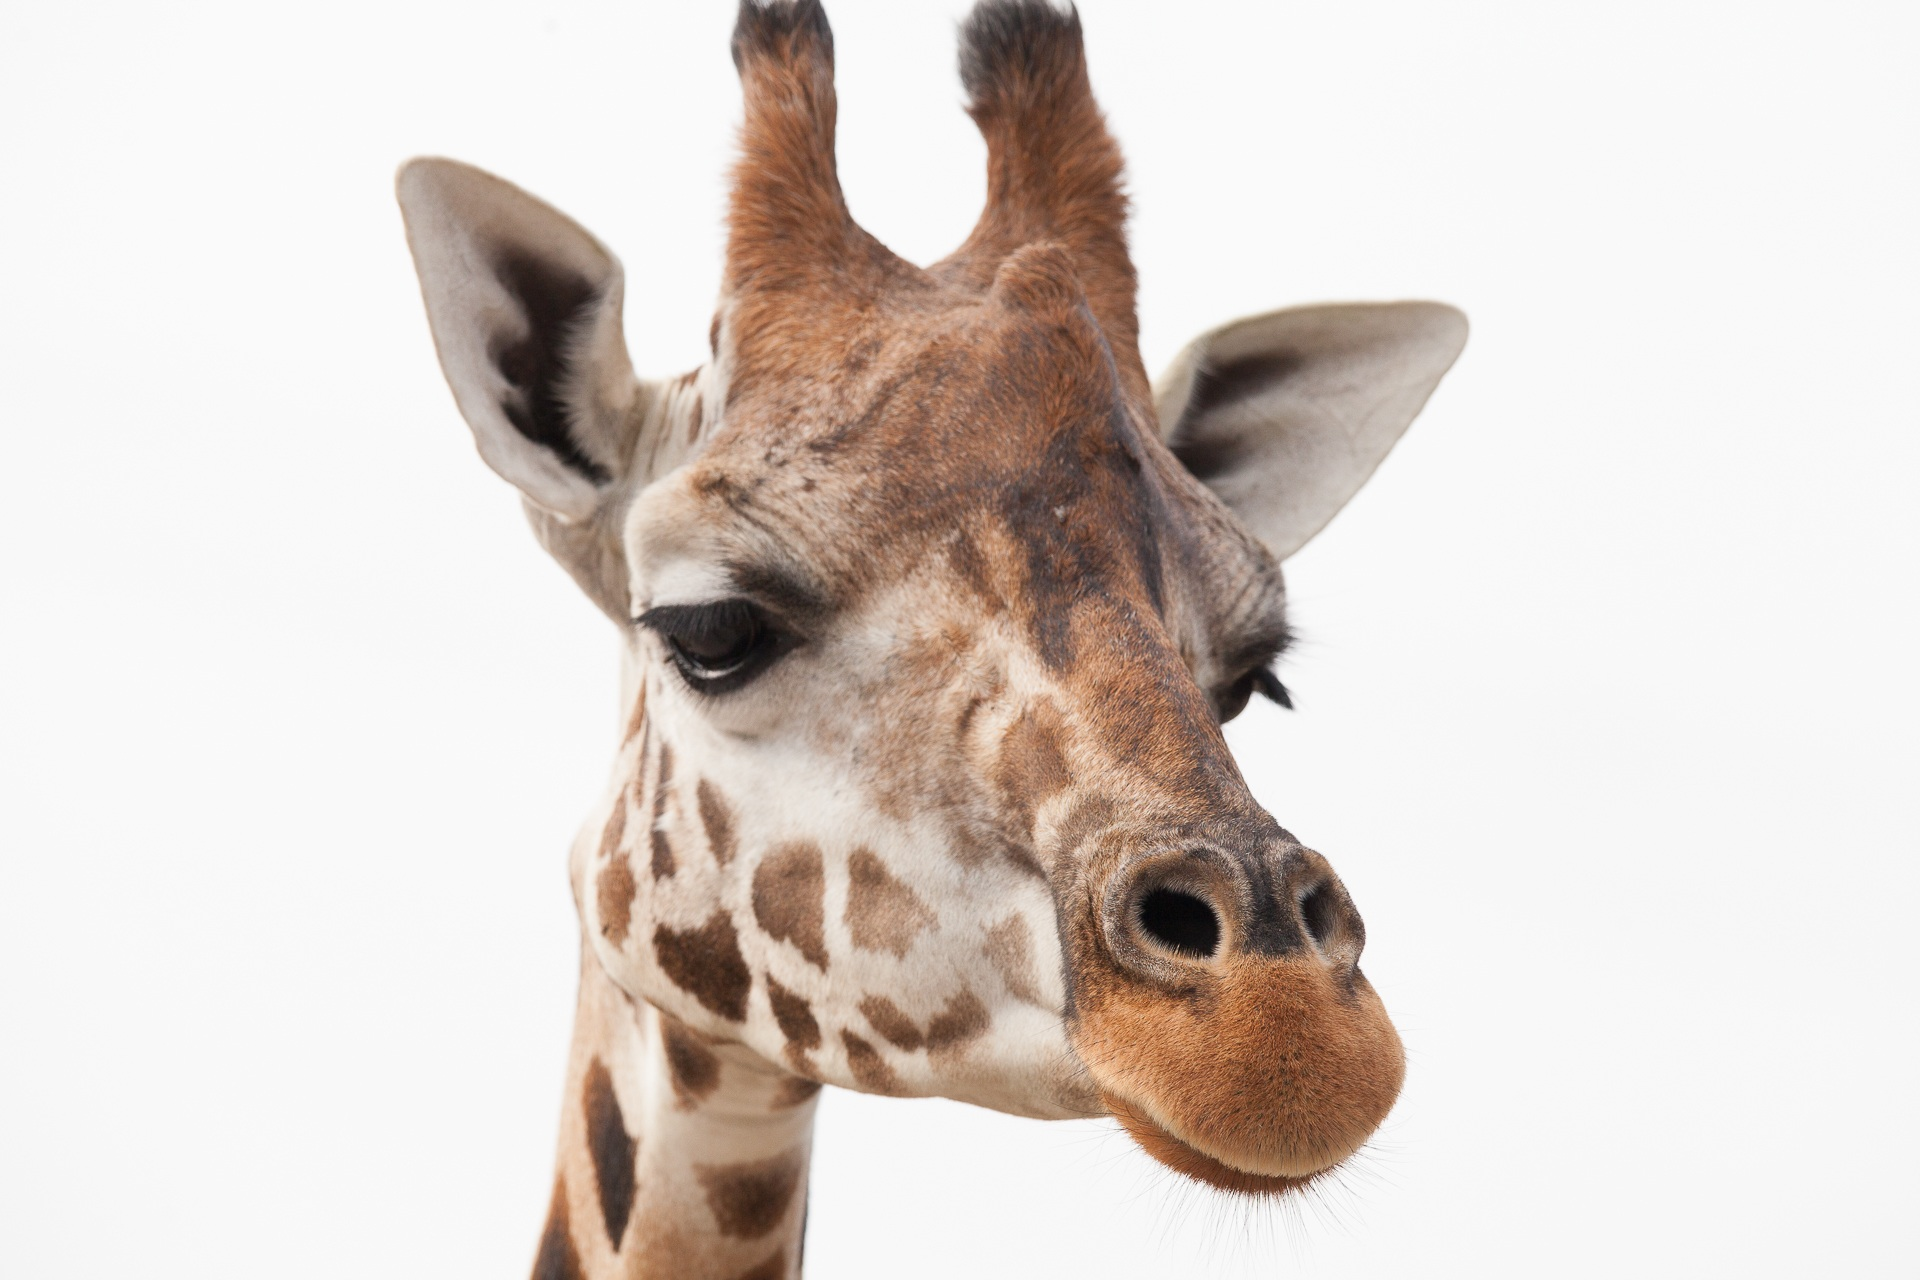 Cool Iphone 7 Wallpapers Free Stock Photo Of Africa Animal Giraffe